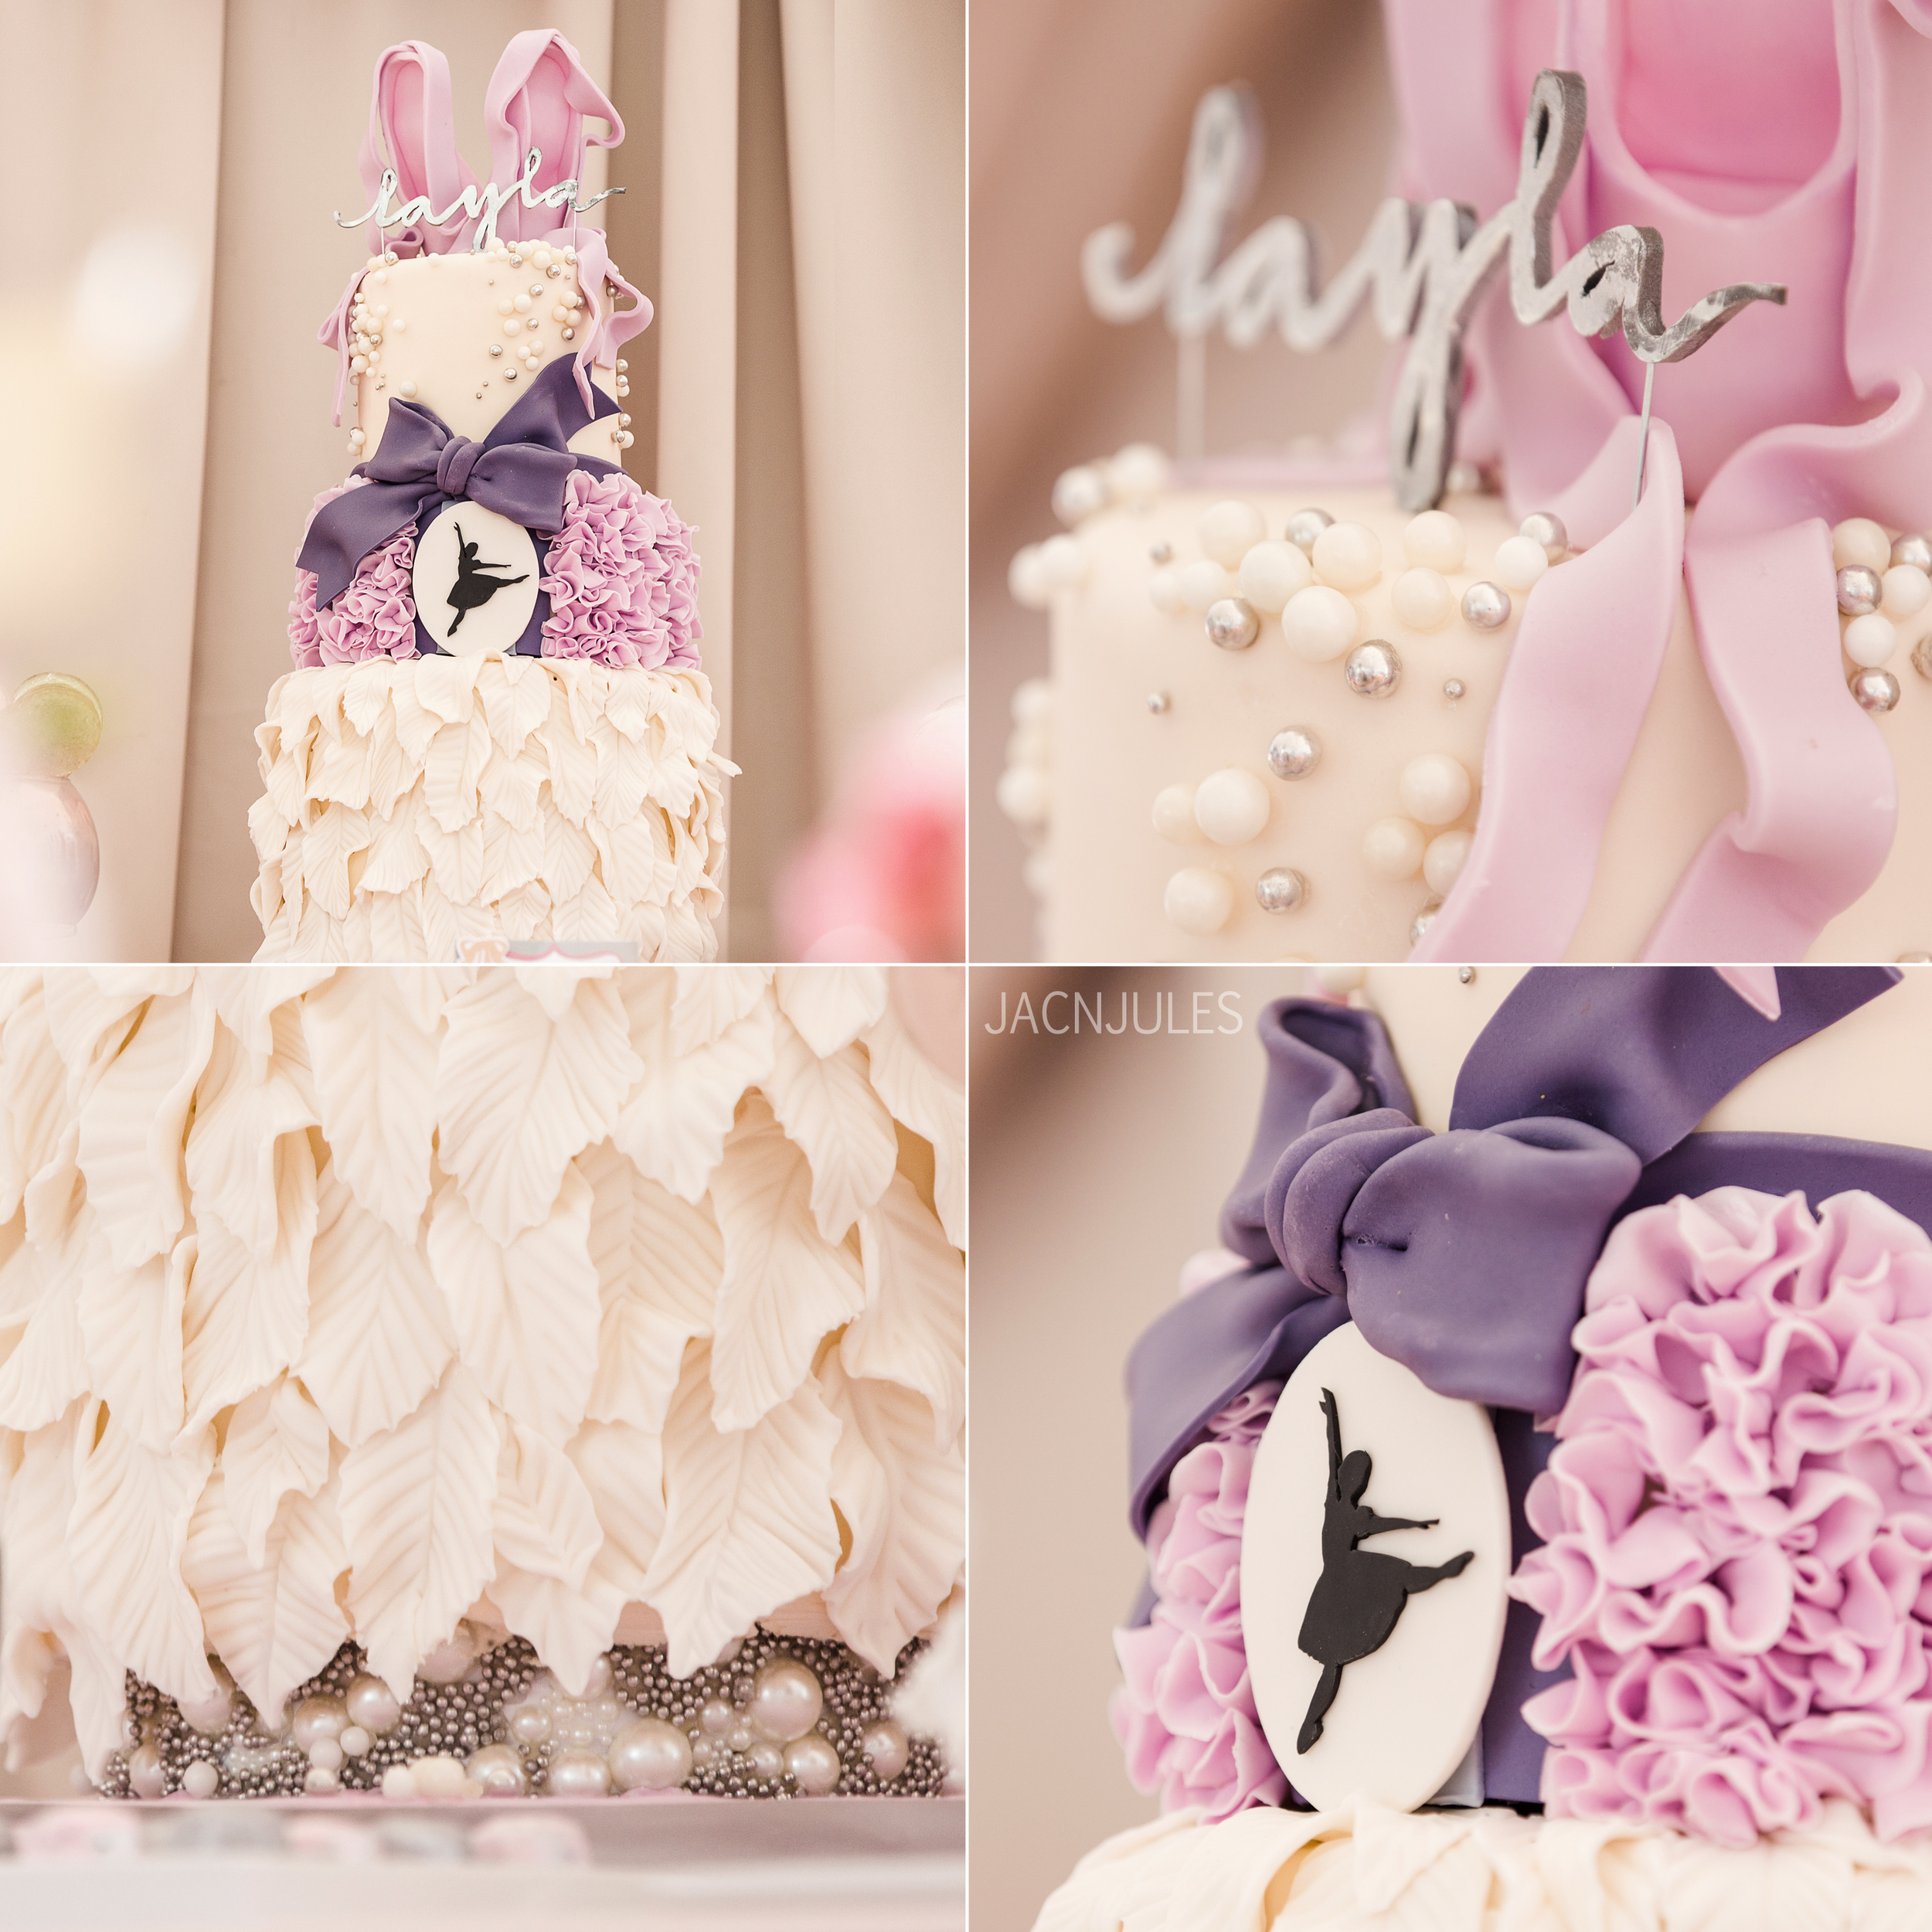 This amazingly designed cake was created by  Lulu Cake Boutique